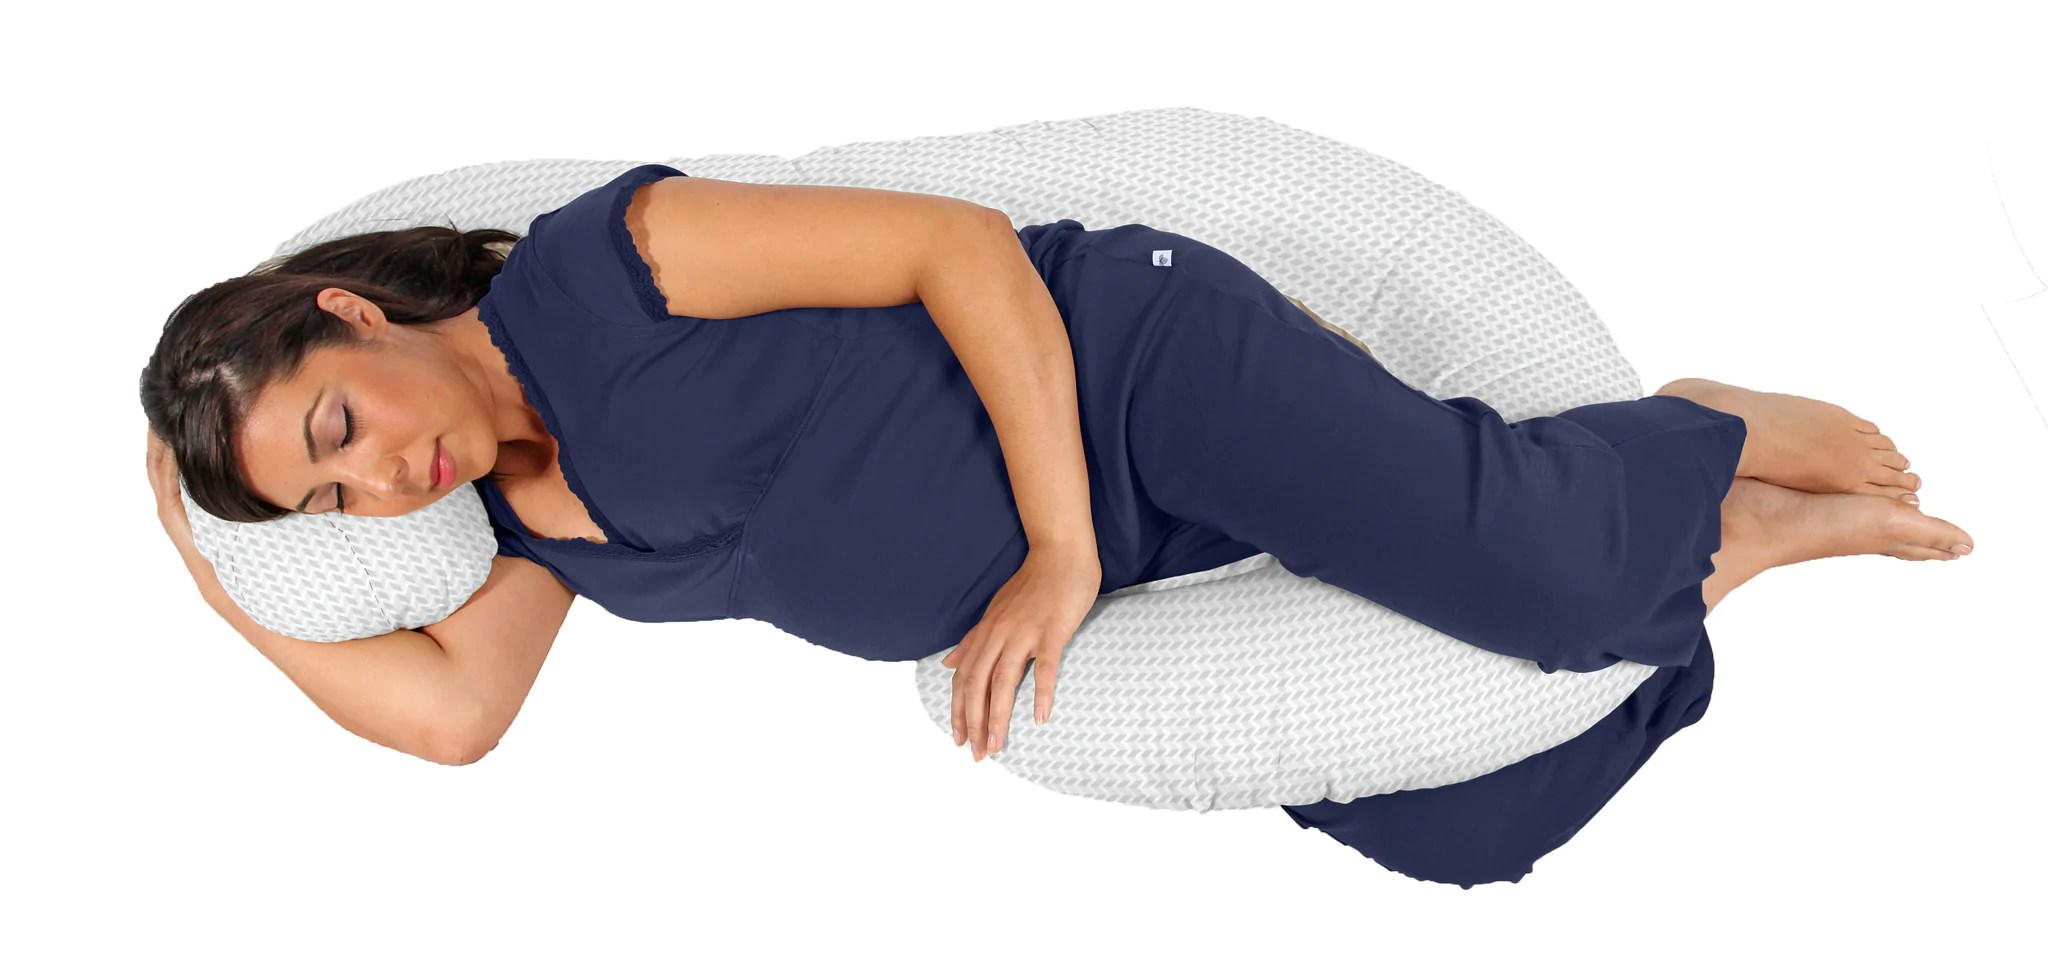 body pillow replacement cover only